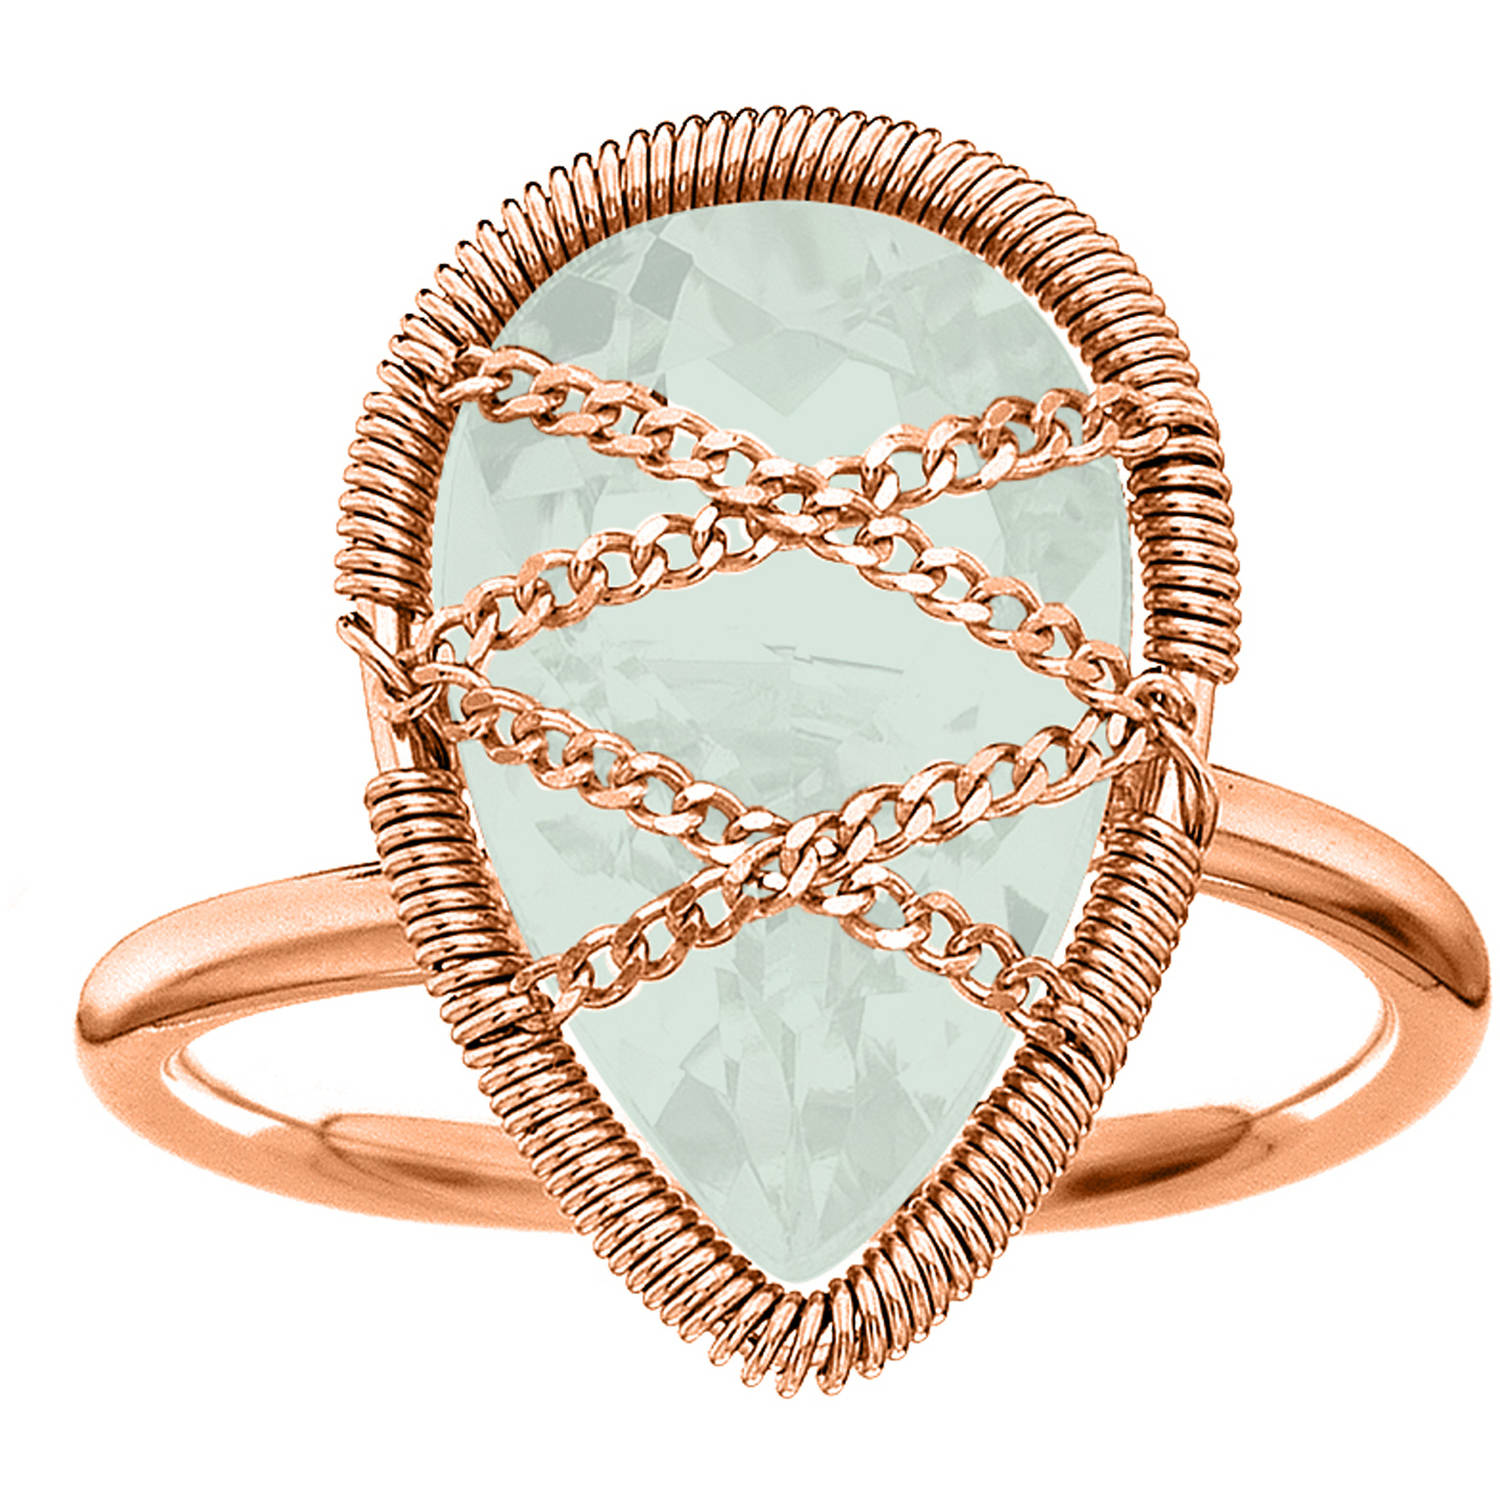 5th & Main Rose Gold over Sterling Silver Hand-Wrapped Teardrop Chalcedony Stone Ring by Generic